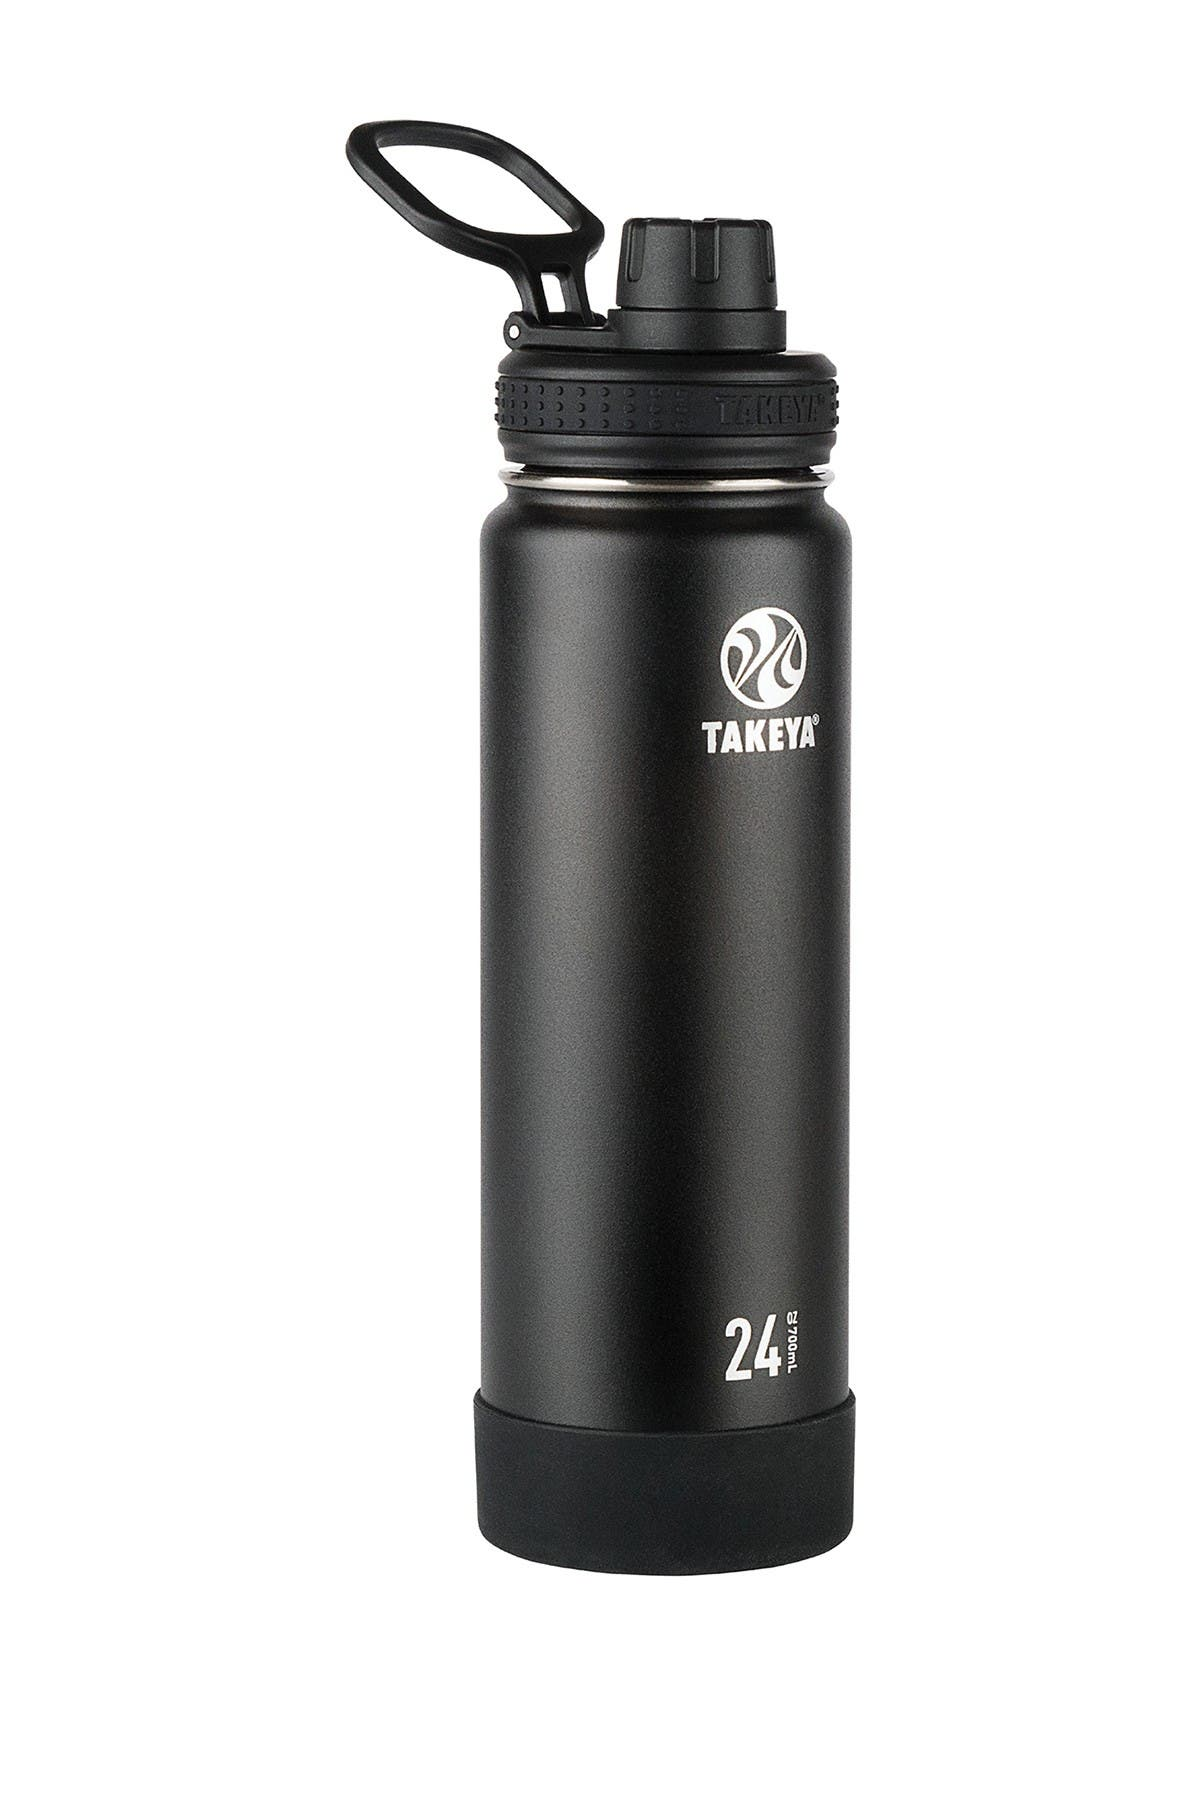 Image of Takeya Onyx Active Insulated 24 oz. Stainless Steel Monochromatic Bottle